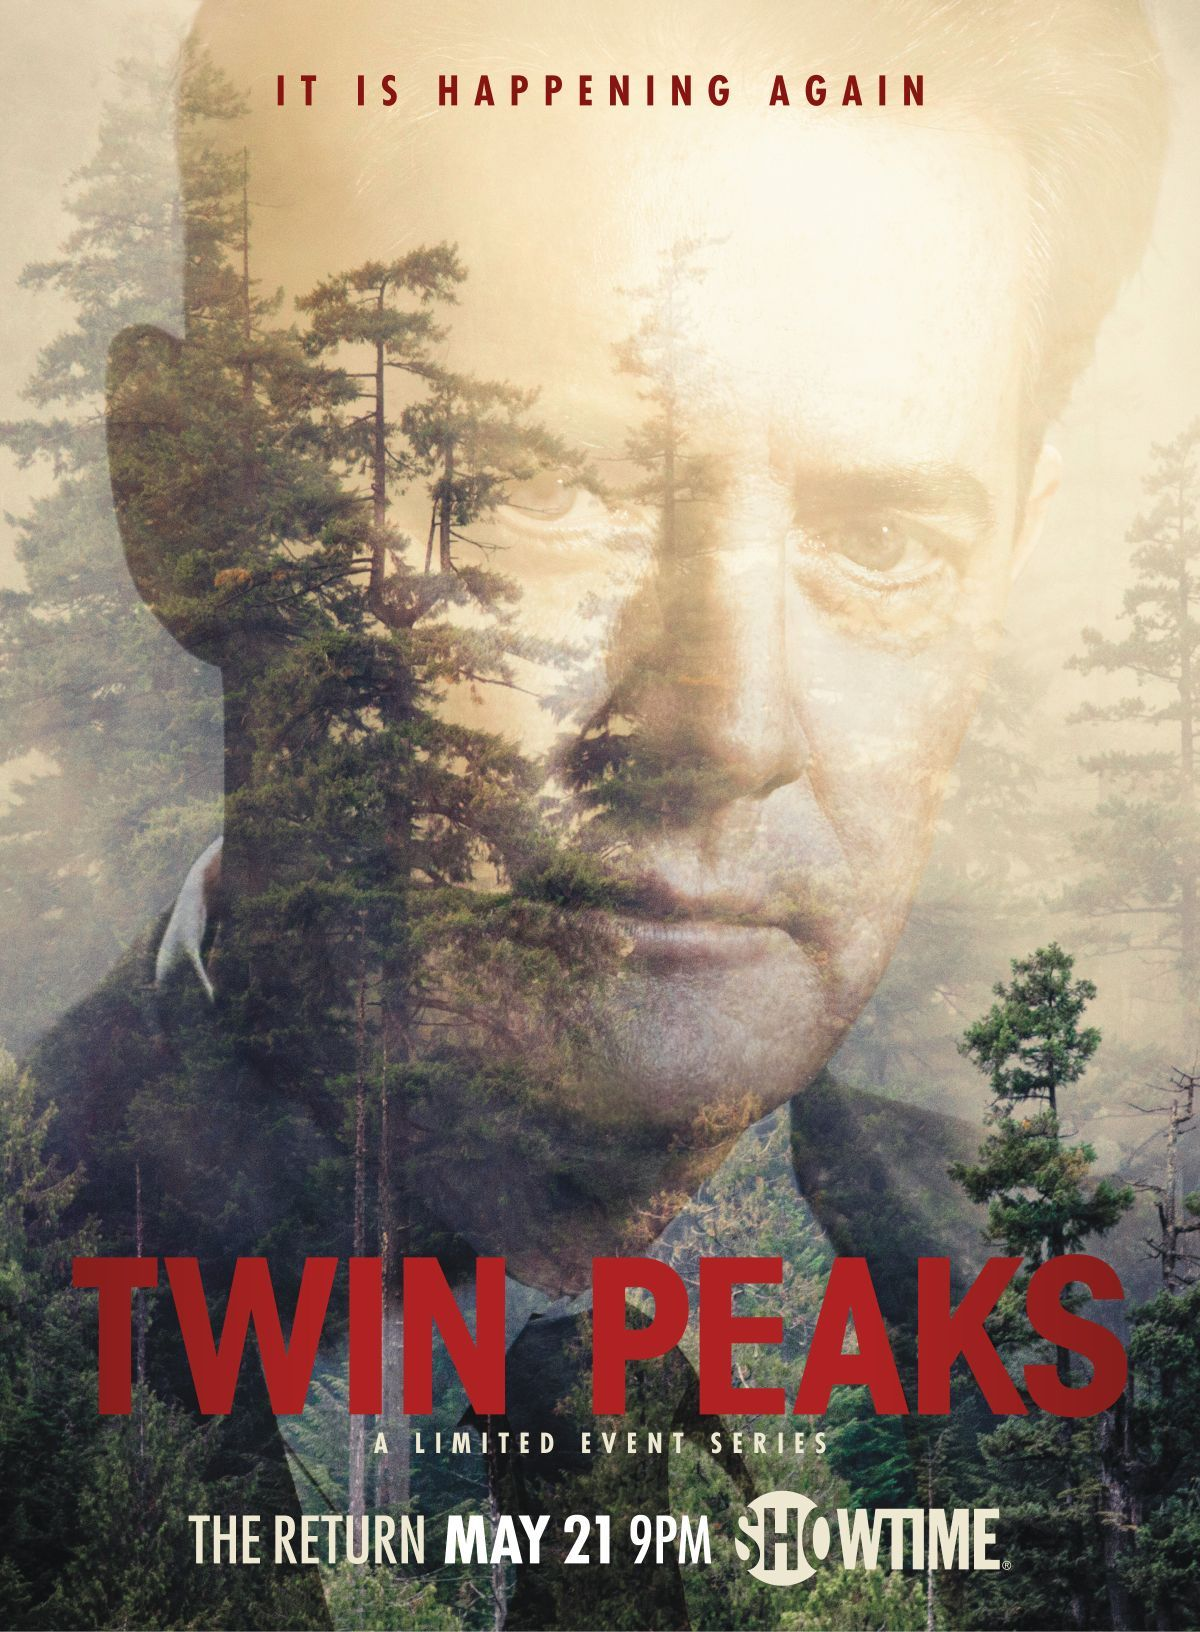 La saison 3 de Twin Peaks, analyses, explications, révélations